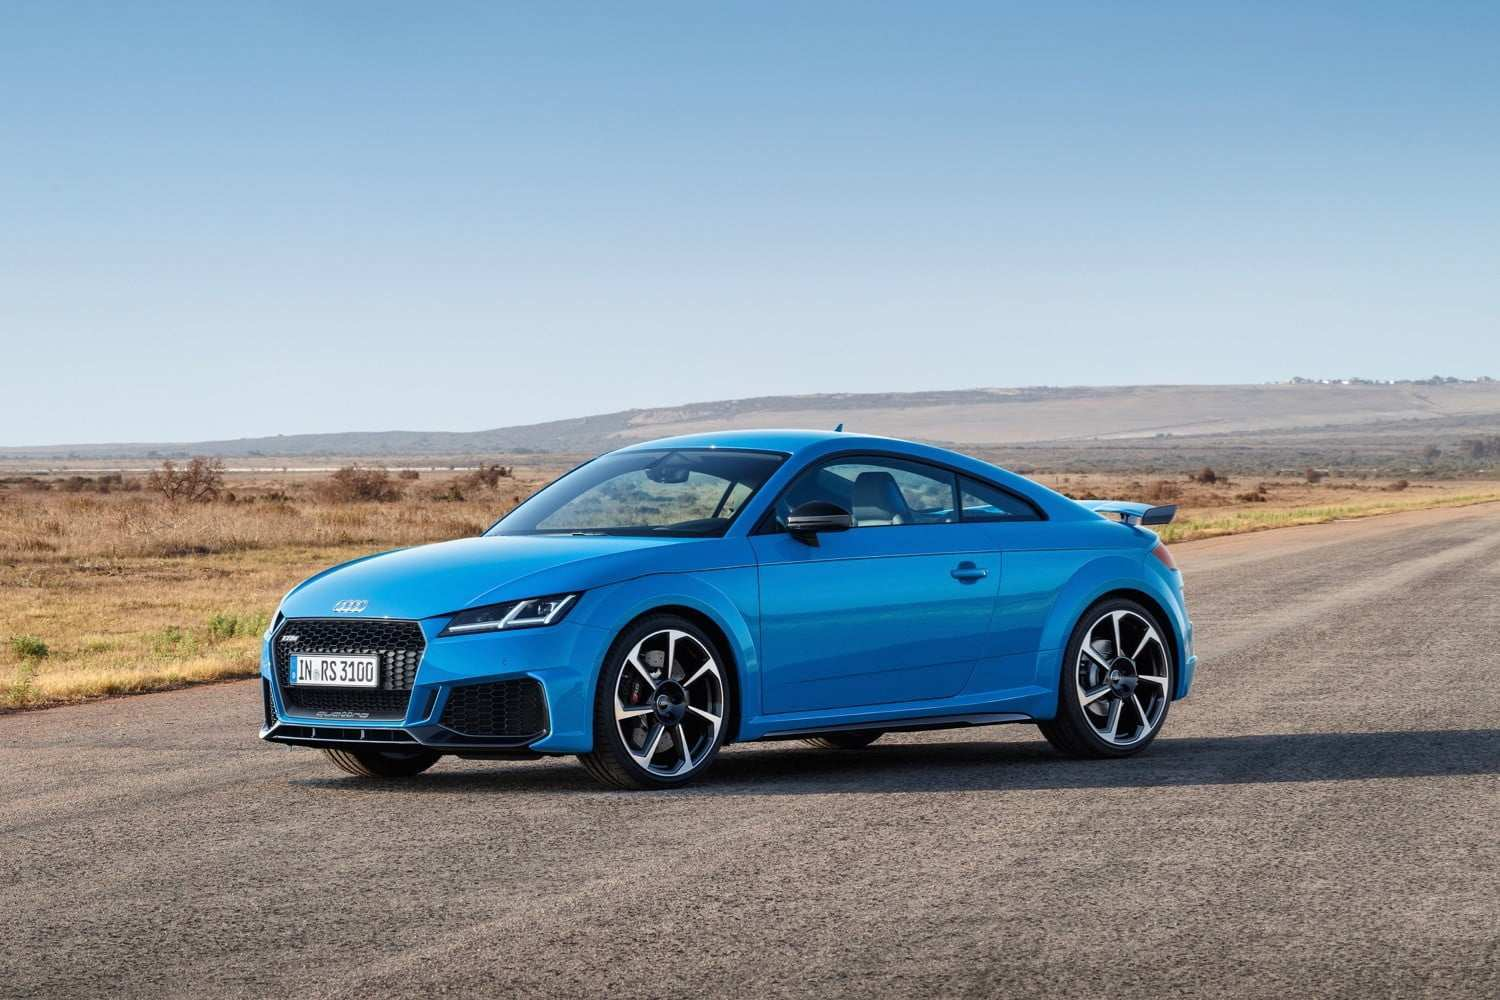 54 The Best 2020 Audi Tt Rs Wallpaper